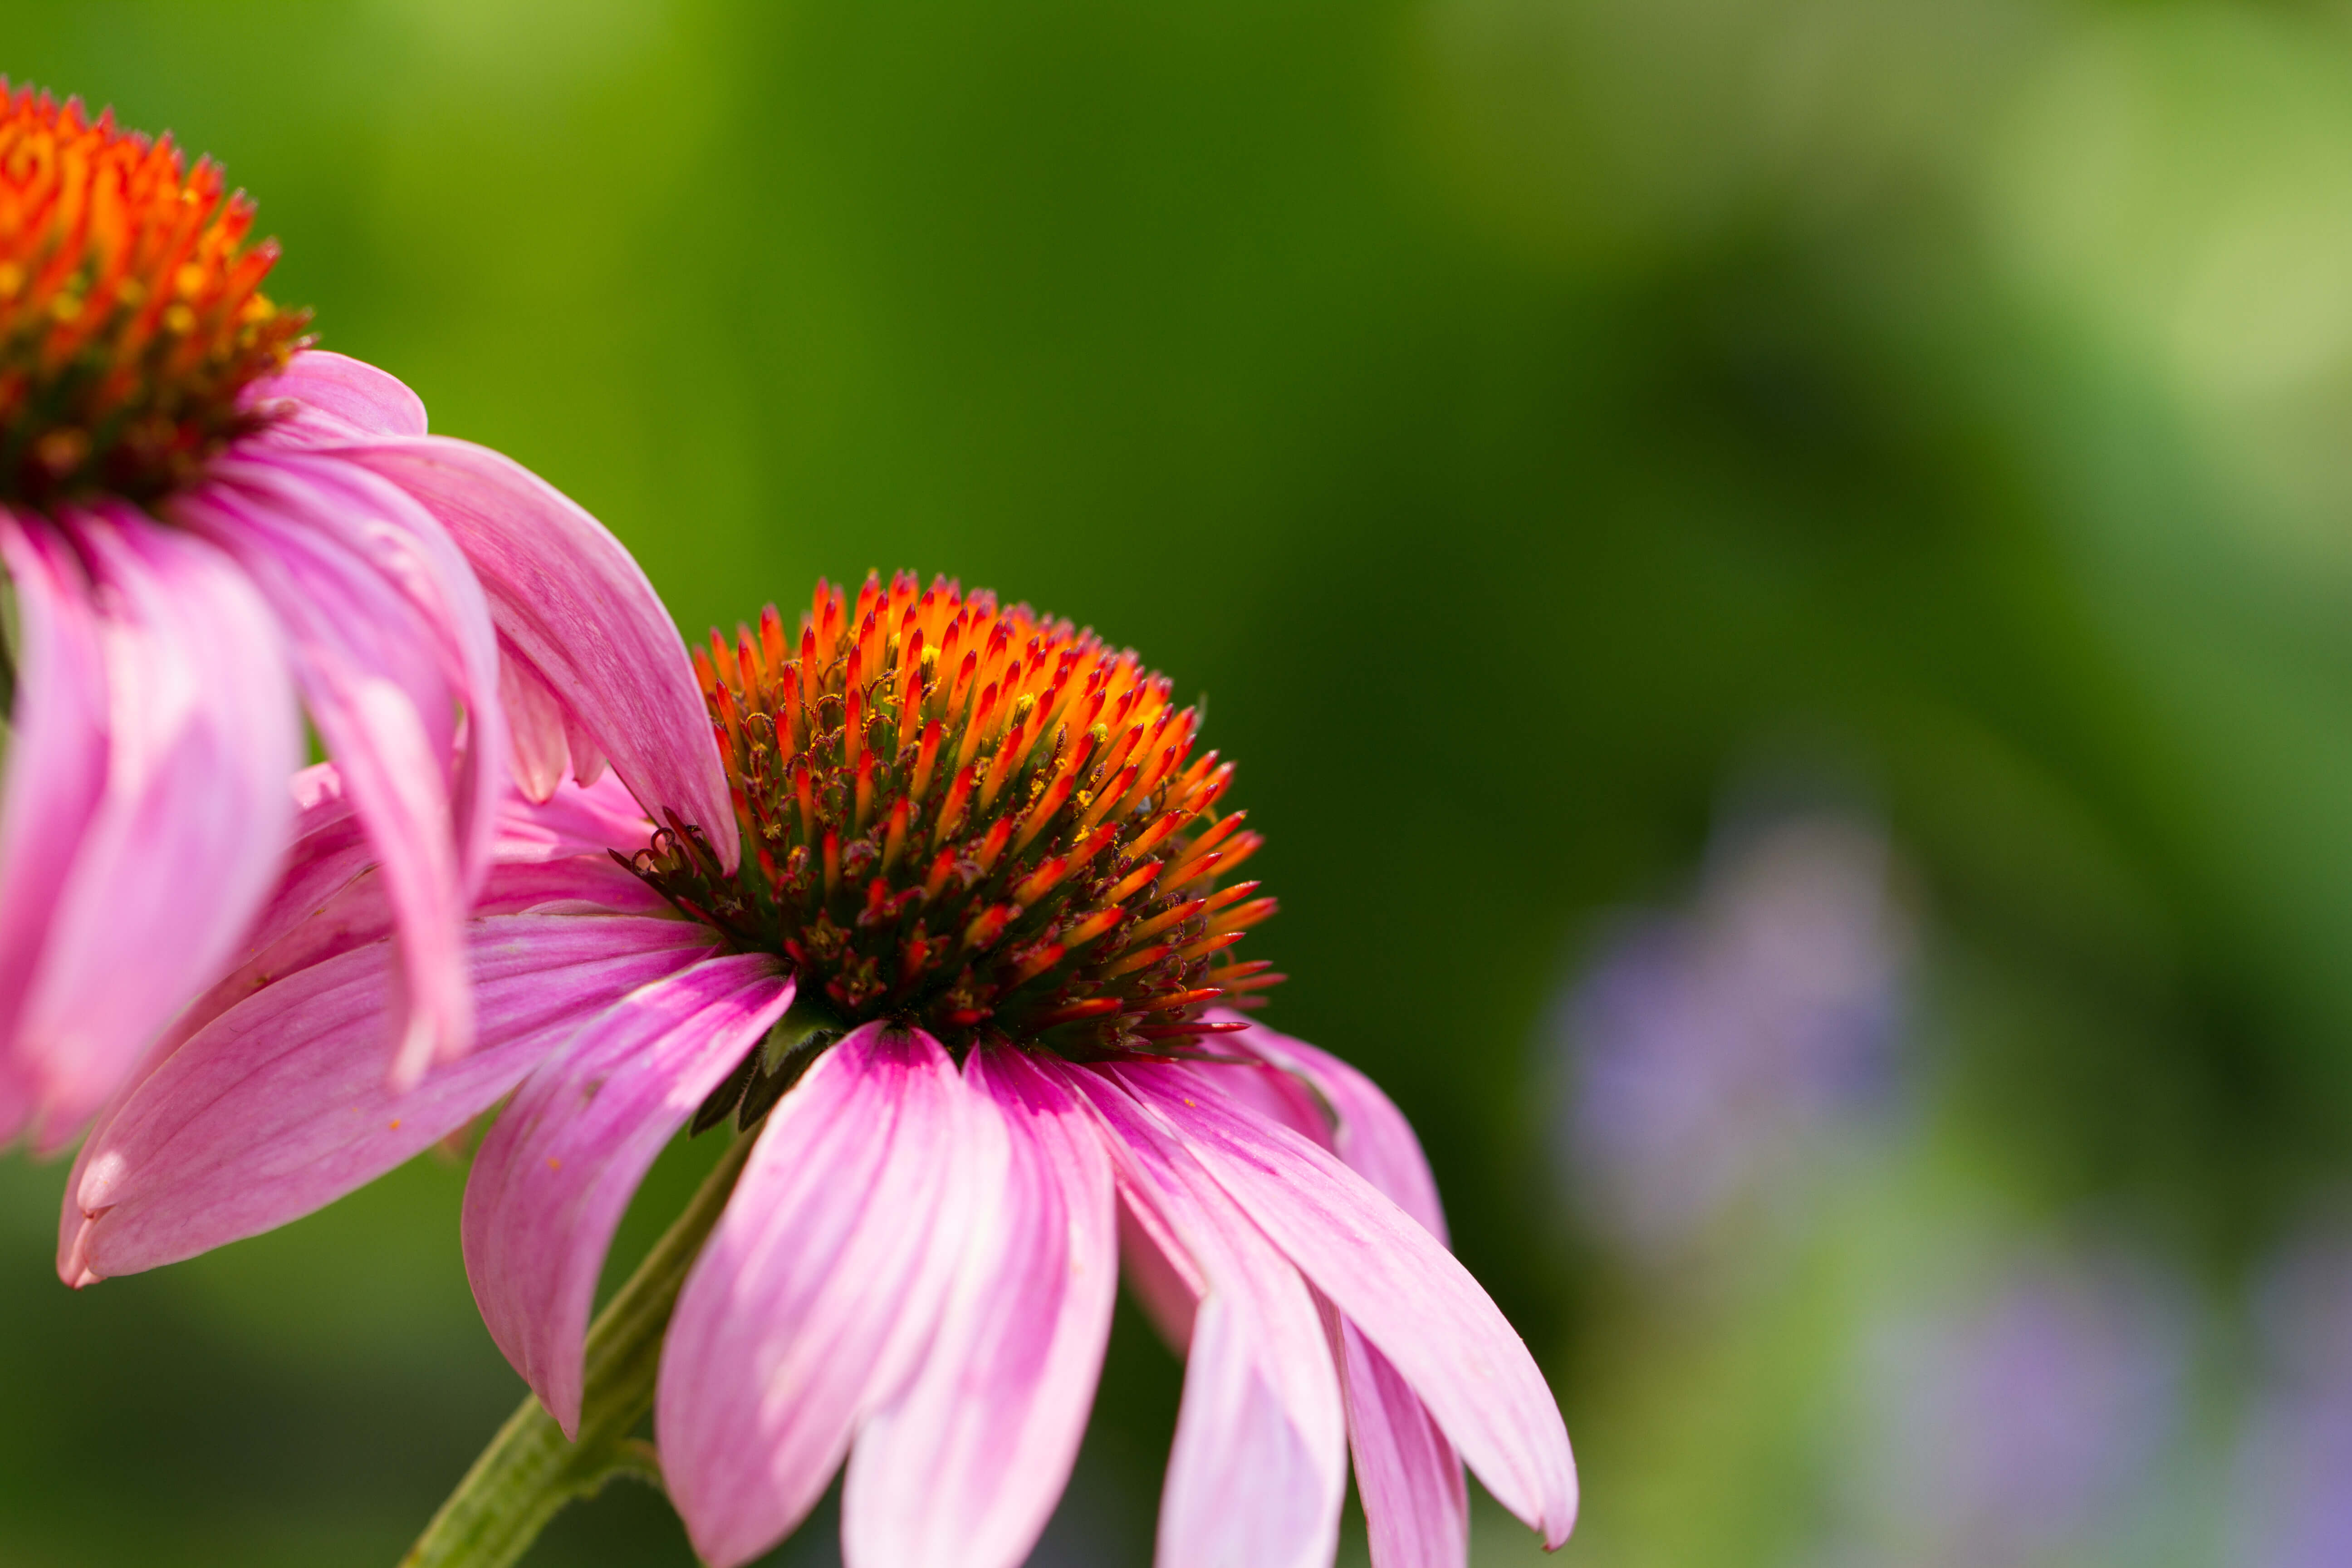 Echinacea tincture. Properties and application 75